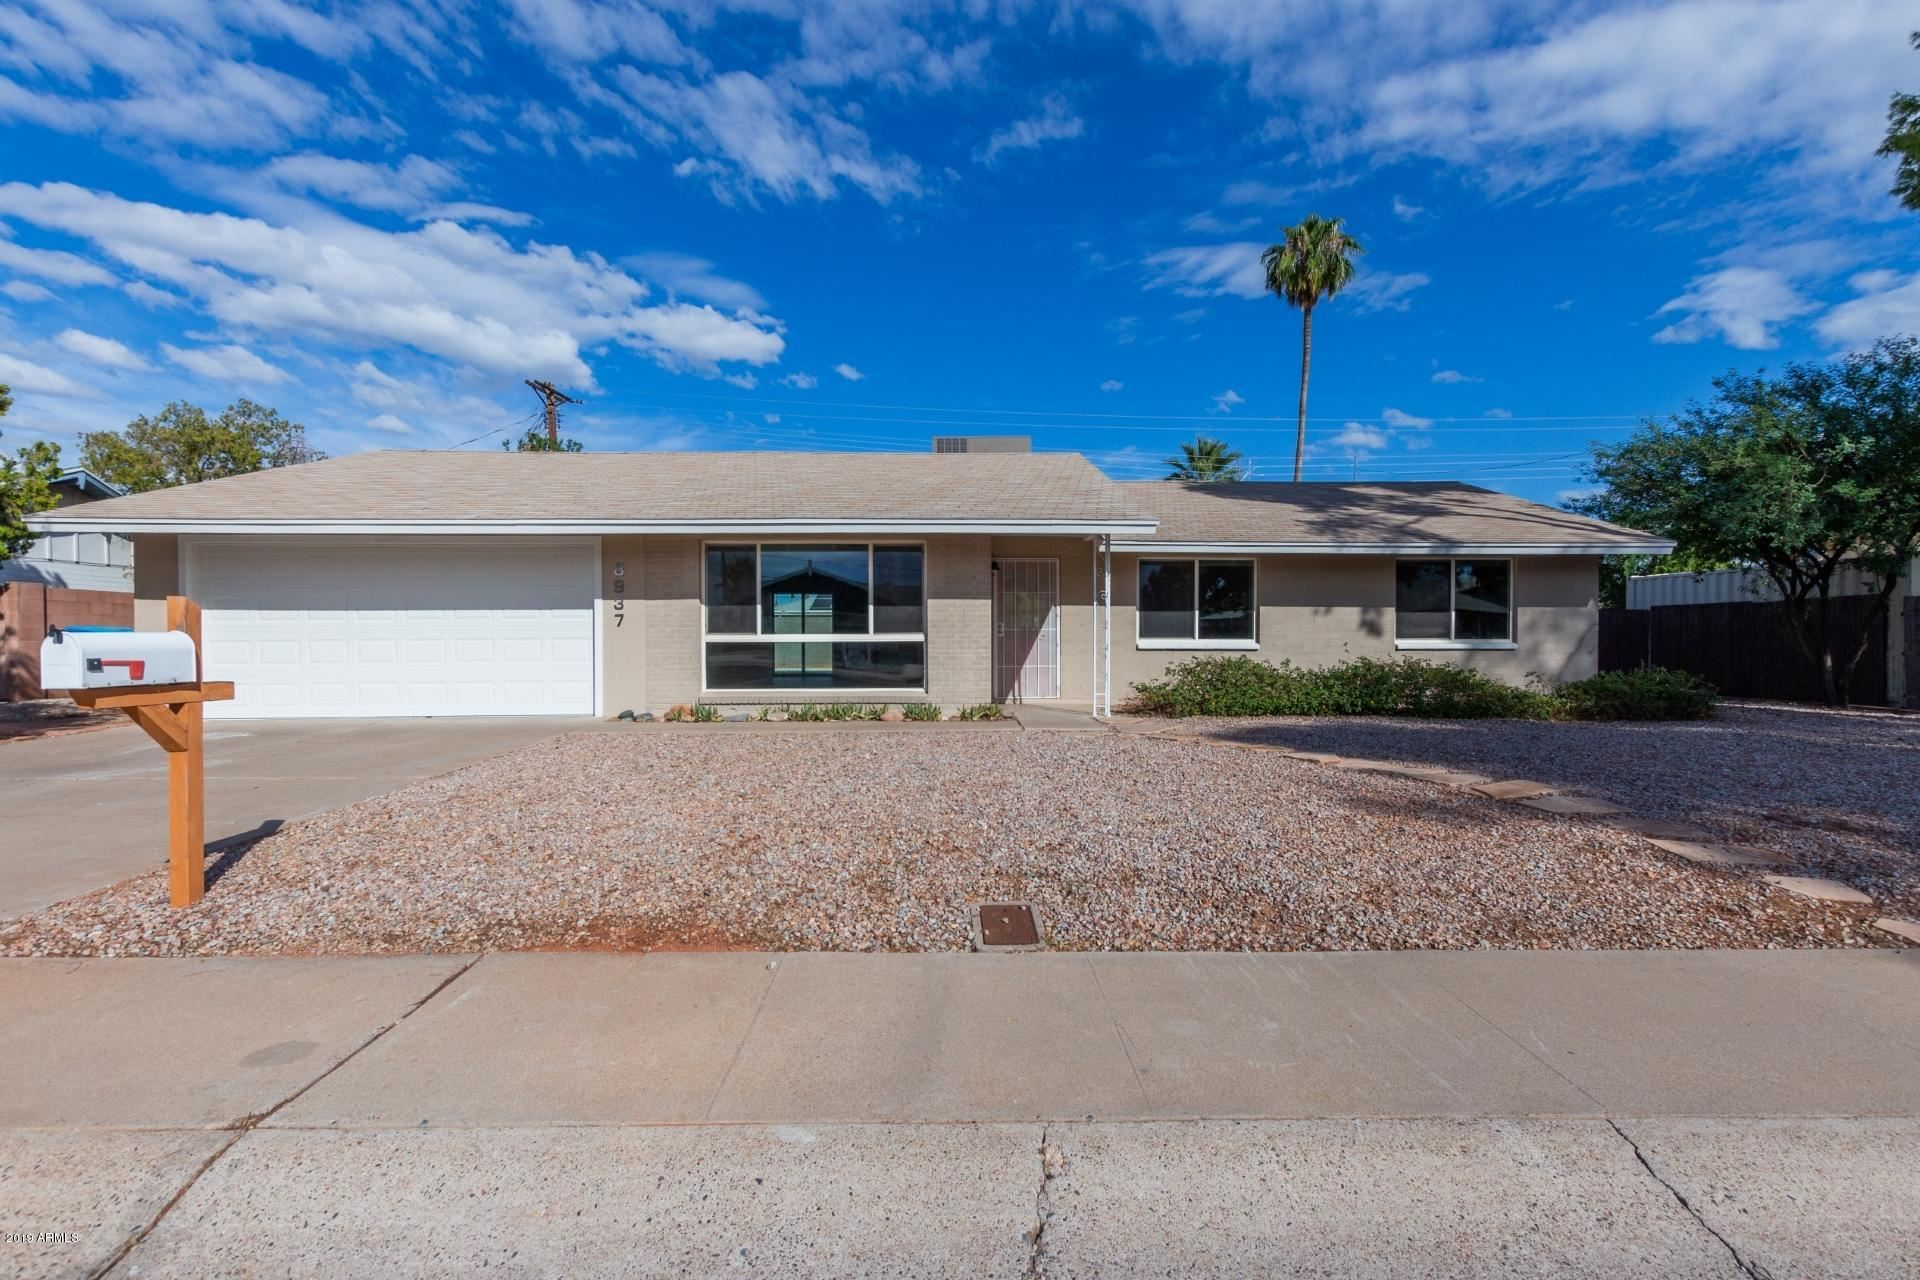 8937 N 18TH Avenue, Phoenix, AZ 85021 - MLS#: 5983875